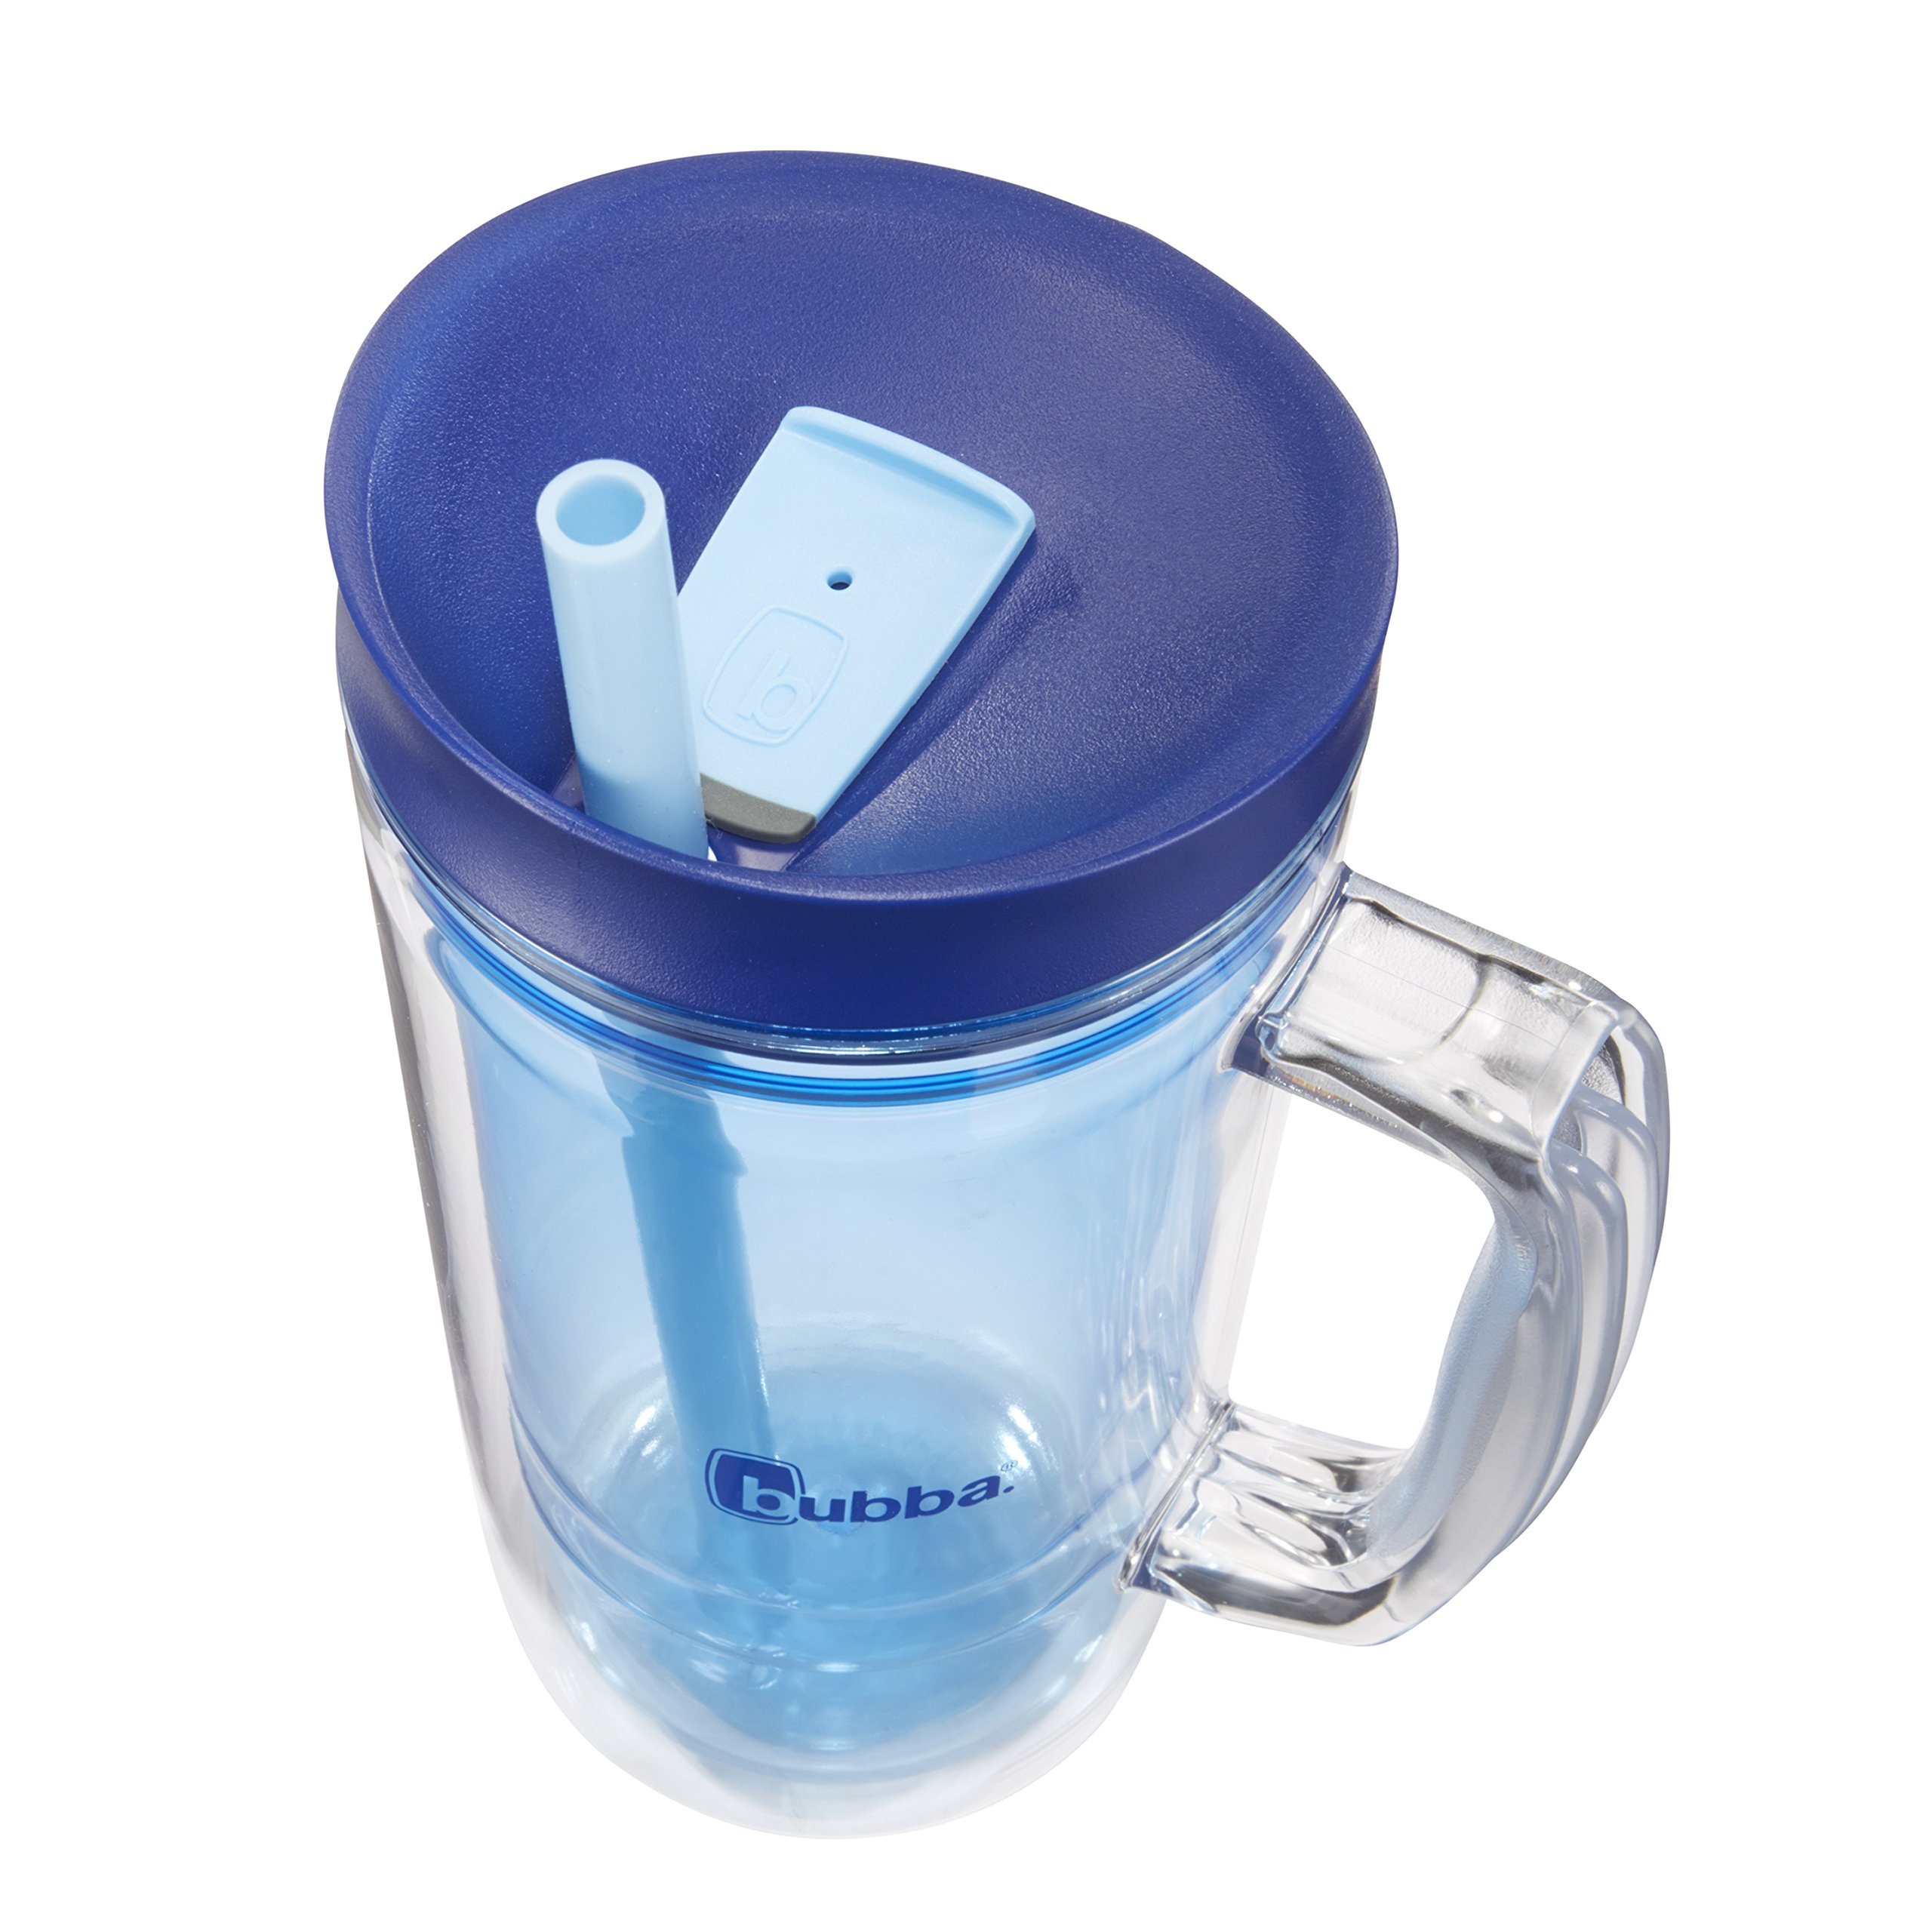 Bubba Envy Double Wall Insulated Straw Tumbler with Handle, 32 oz, Blue by BUBBA BRANDS (Image #2)